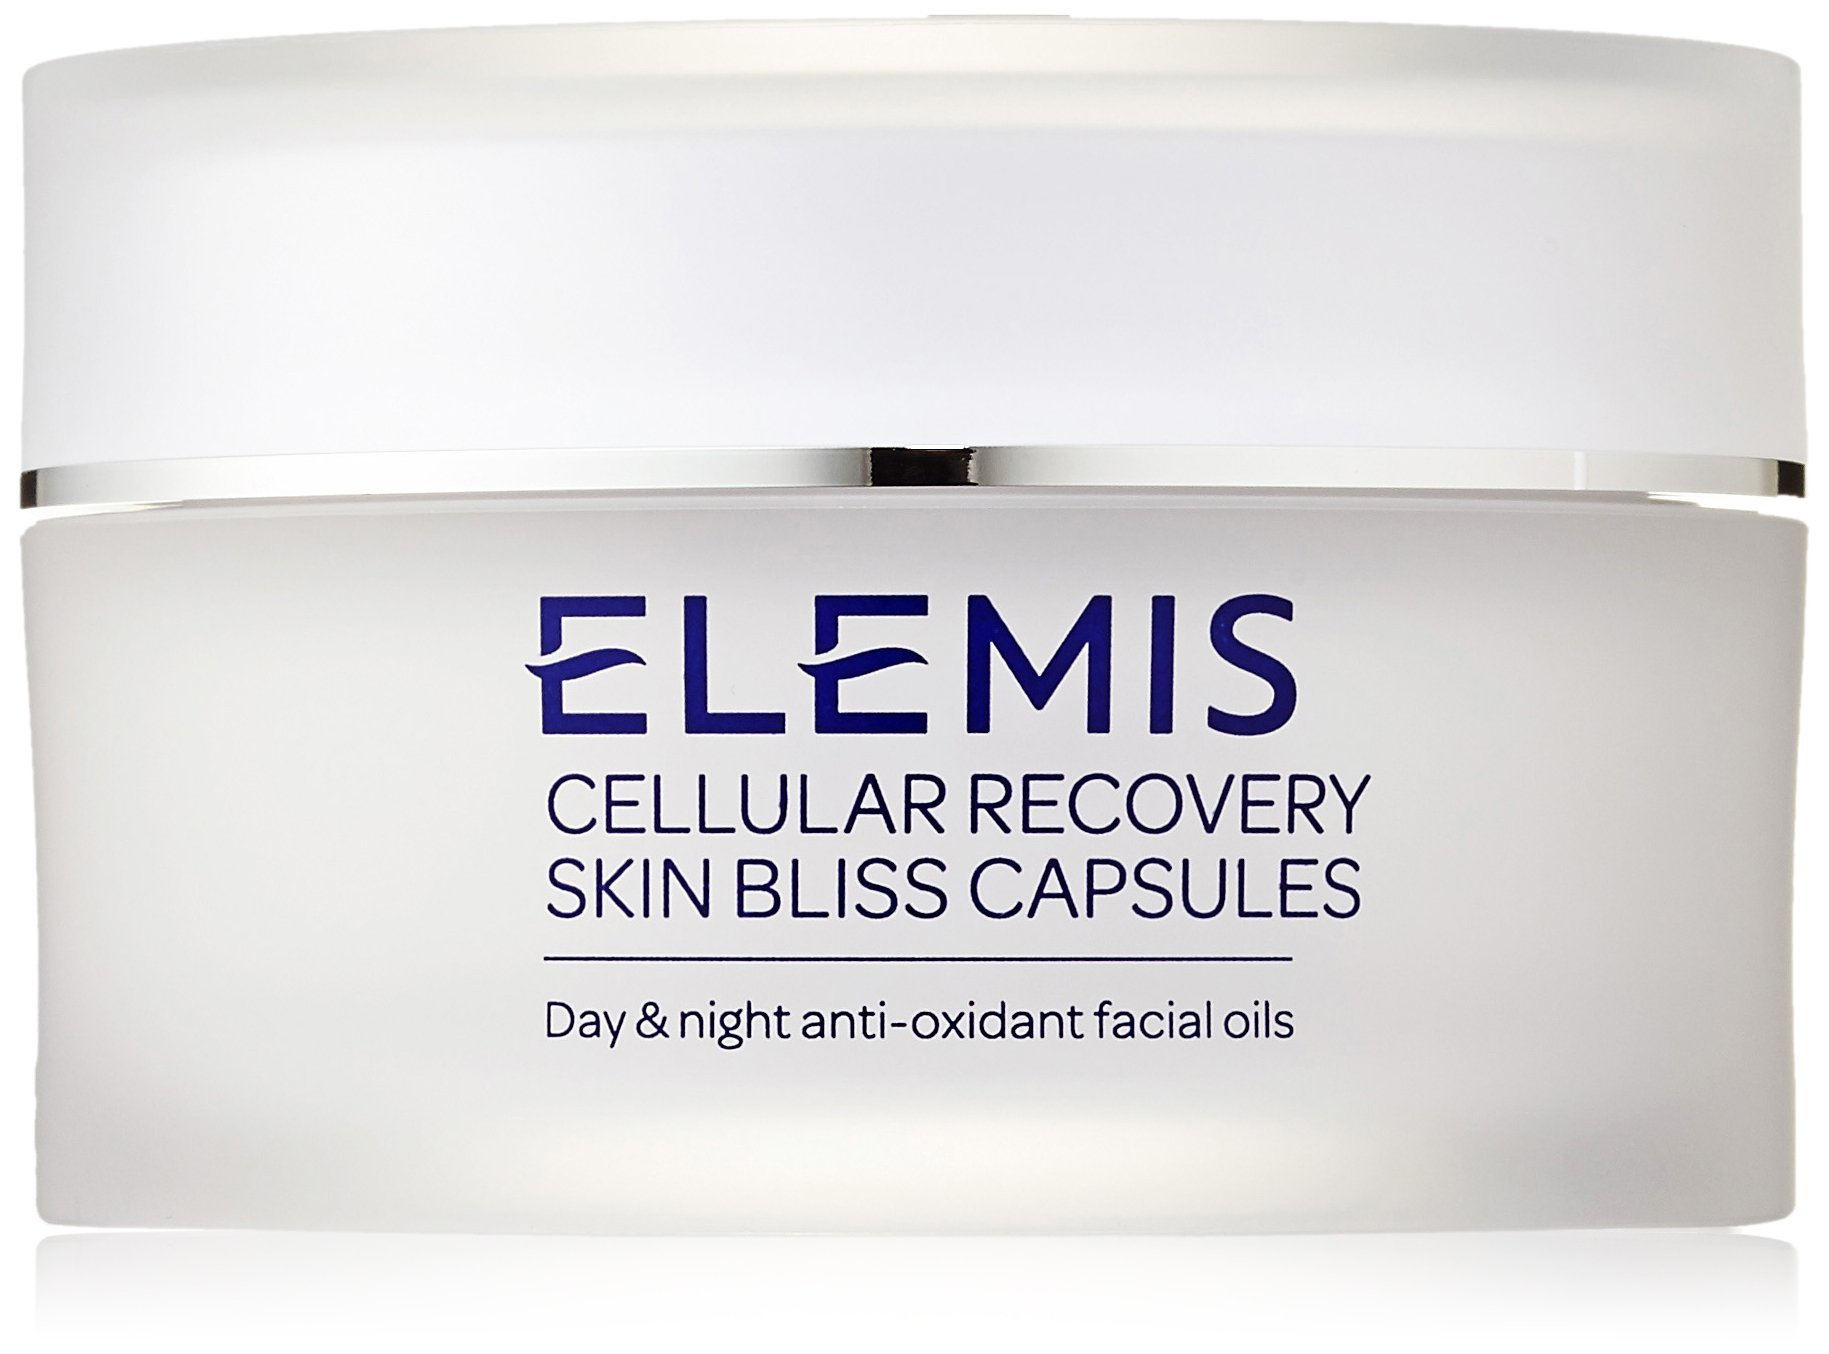 ELEMIS Cellular Recovery Skin Bliss Capsules, Day and Night Anti-Oxidant Facial Oils, 60 Capsules